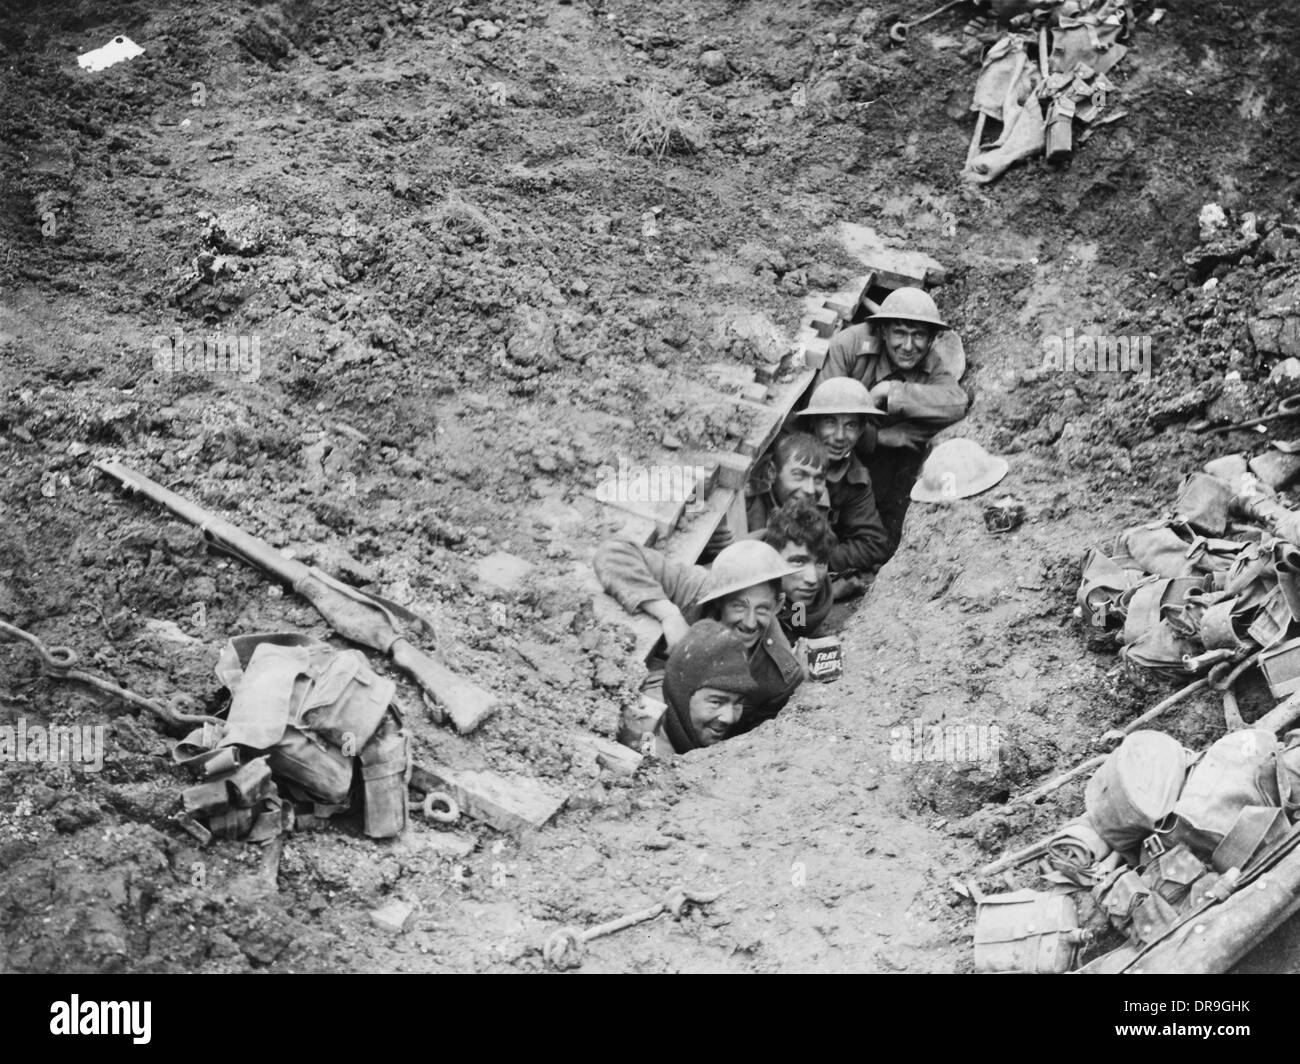 British soldiers in captured dugout, France, WW1 - Stock Image